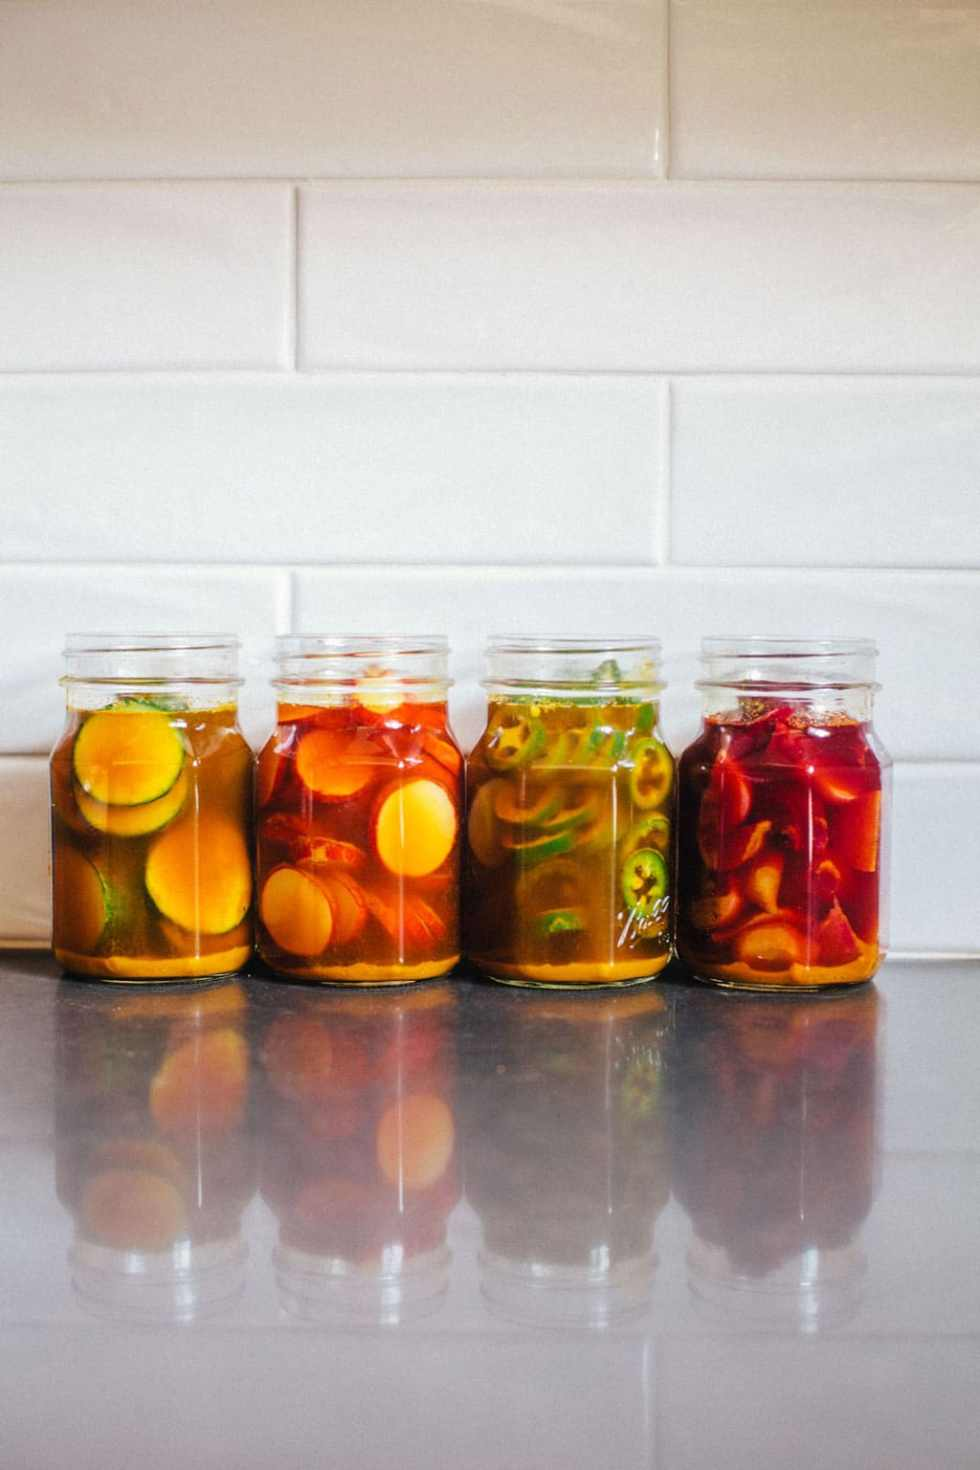 These sweet turmeric pickles are the BEST and most flavorful pickles you'll ever eat. There's no refined sugar, and the turmeric adds anti-inflamitory properties. All you have to do is decide what you want to pickle! (I suggest cucumbers, beets, radishes, and jalapenos!) #vegan #pickles #turmeric #healthy #recipe